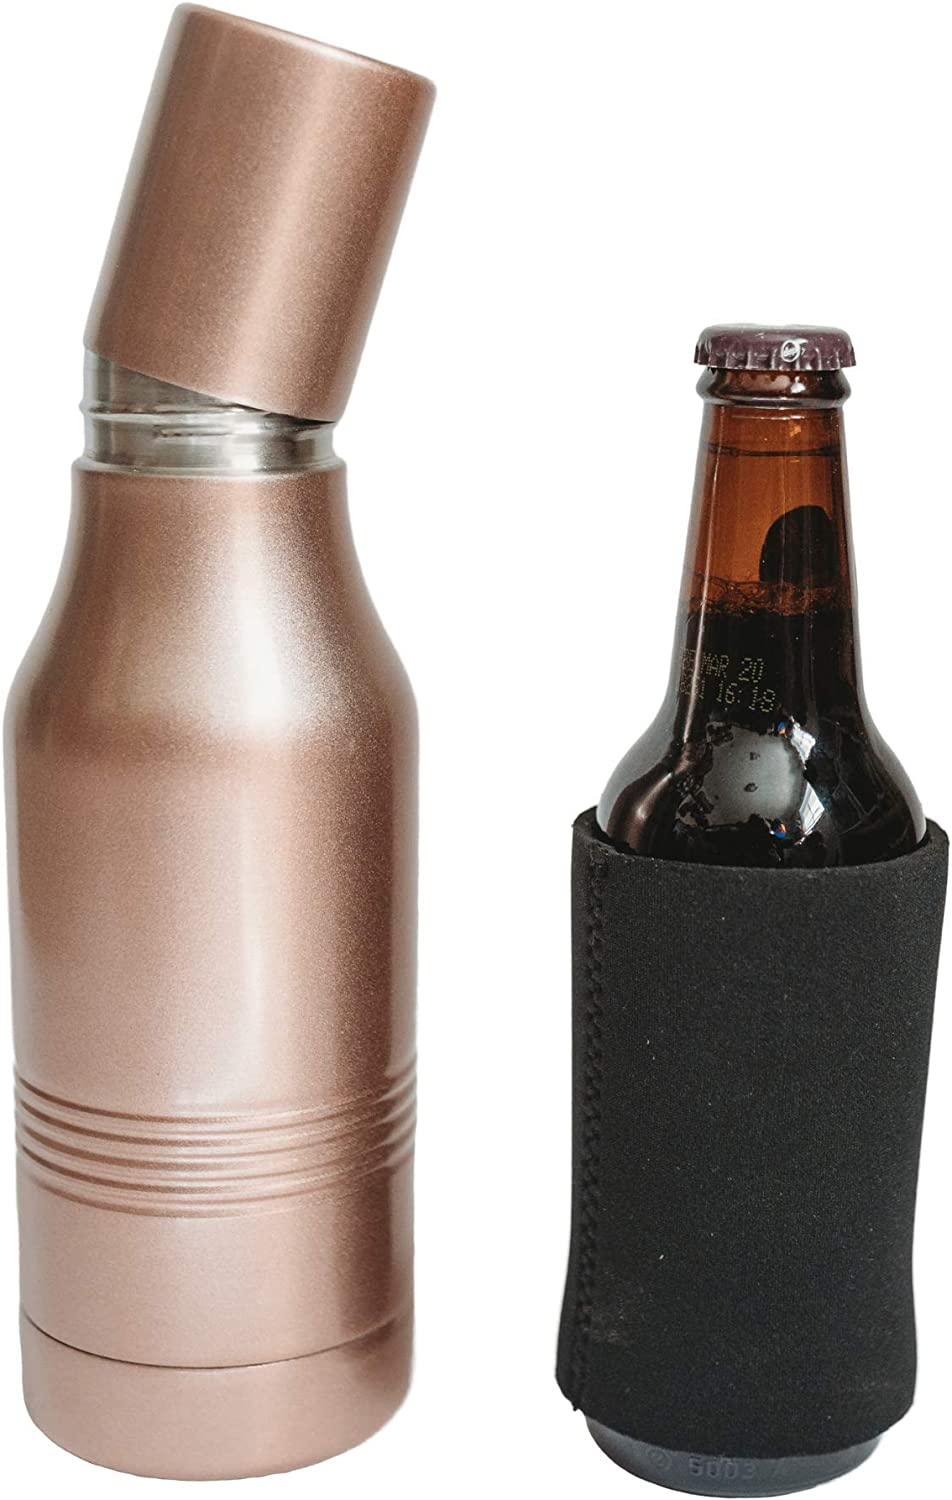 Rose Gold Beer Bottle Keeper for Beer for 12oz Bottles- Stainless Steel Beverage Insulator Beer Bottle Insulator for Women- Beer Huggers for Cold Beverages Insulated Travel Container with Cap